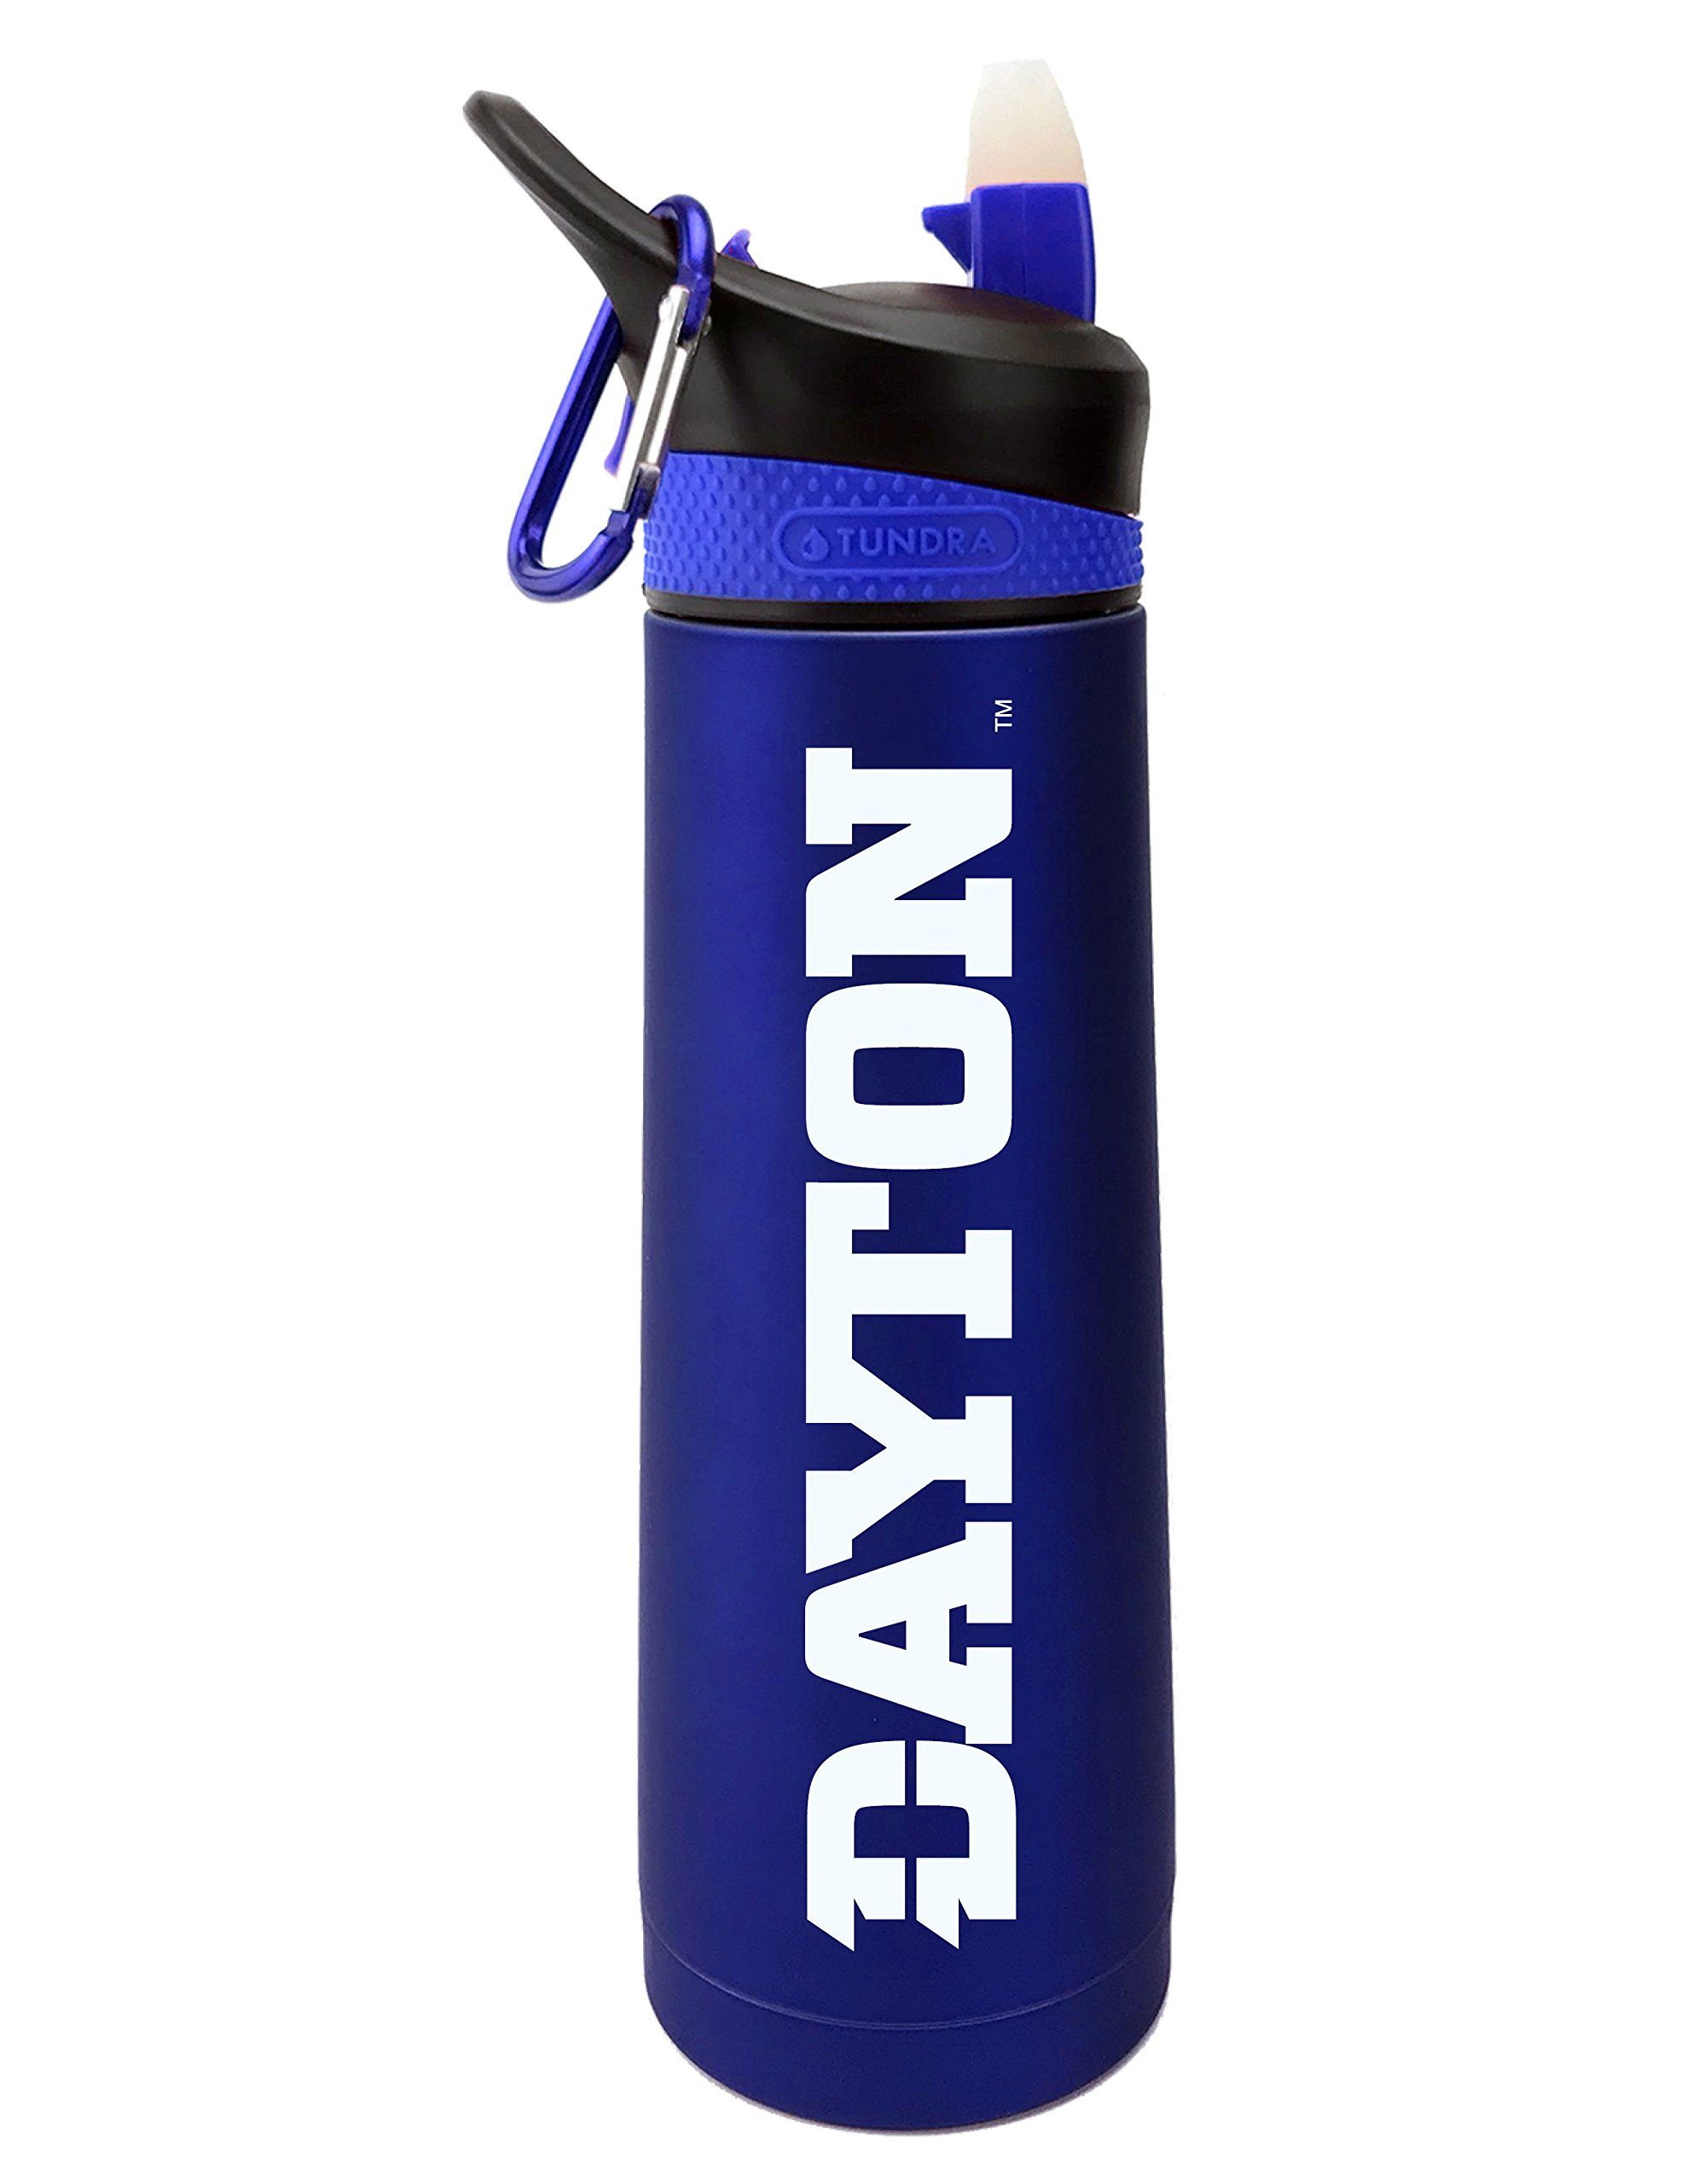 Fanatic Group University of Dayton Dual Walled Stainless Steel Sports Bottle, Design 1 - Blue